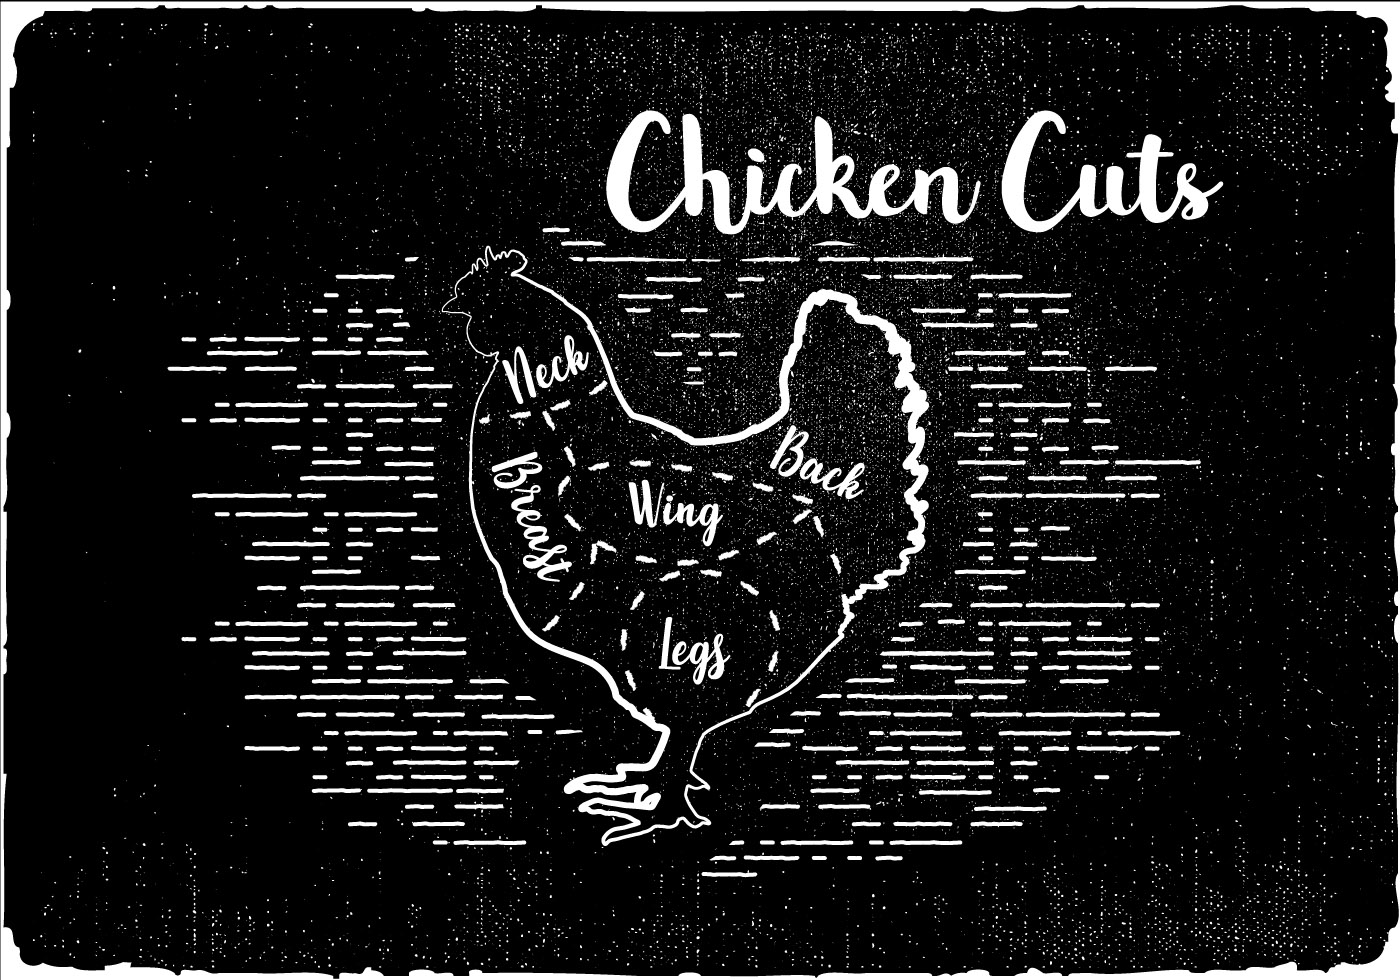 Free Chicken Cuts Vector Background Download Art Meat Diagram Symbol Stock Graphics Images